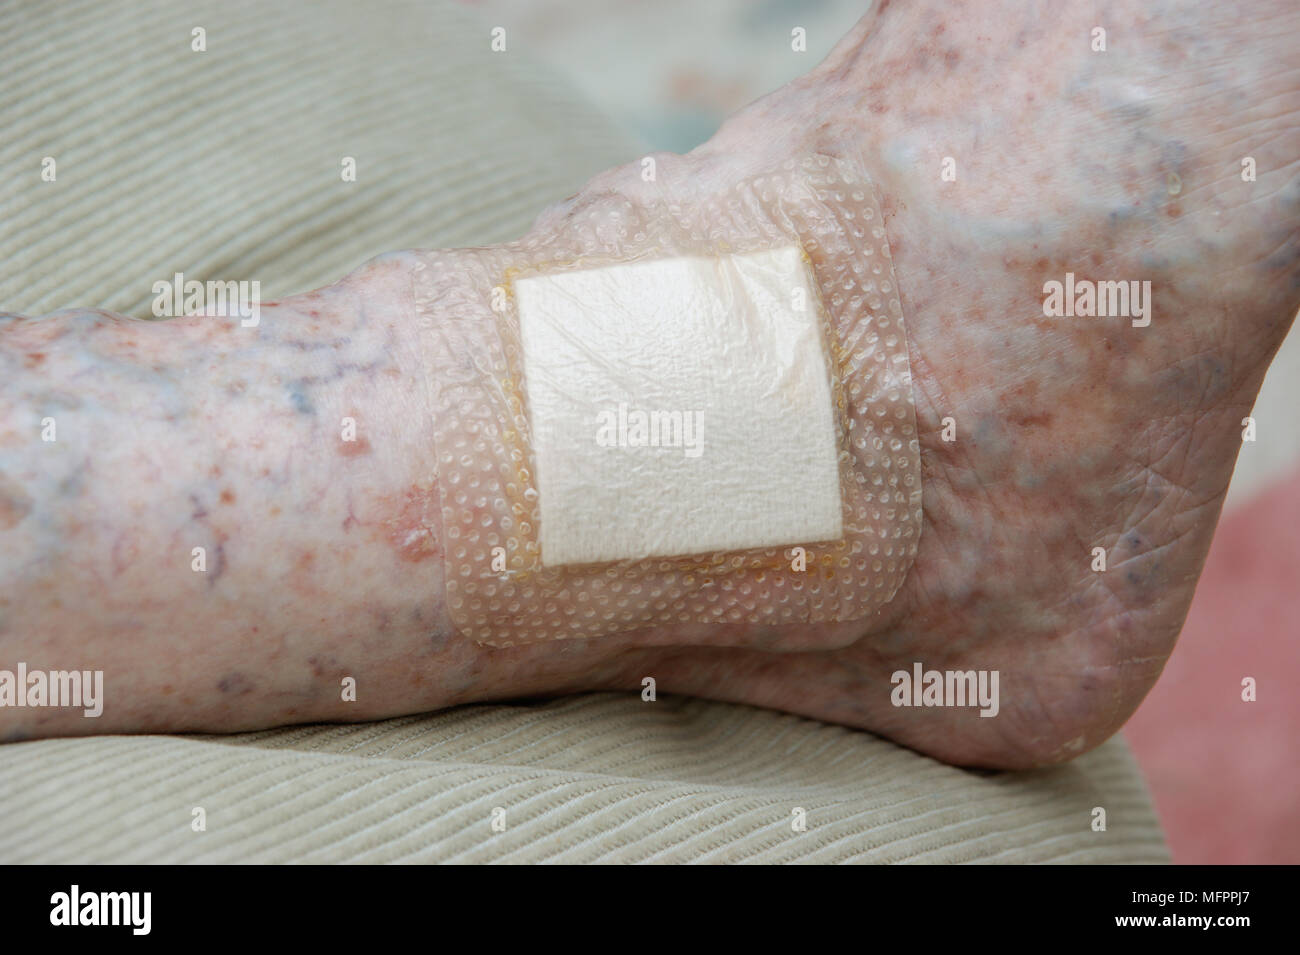 Elderly woman with Mepilex borderlite iodine dressing / plaster to keep wound infection free model release - Stock Image